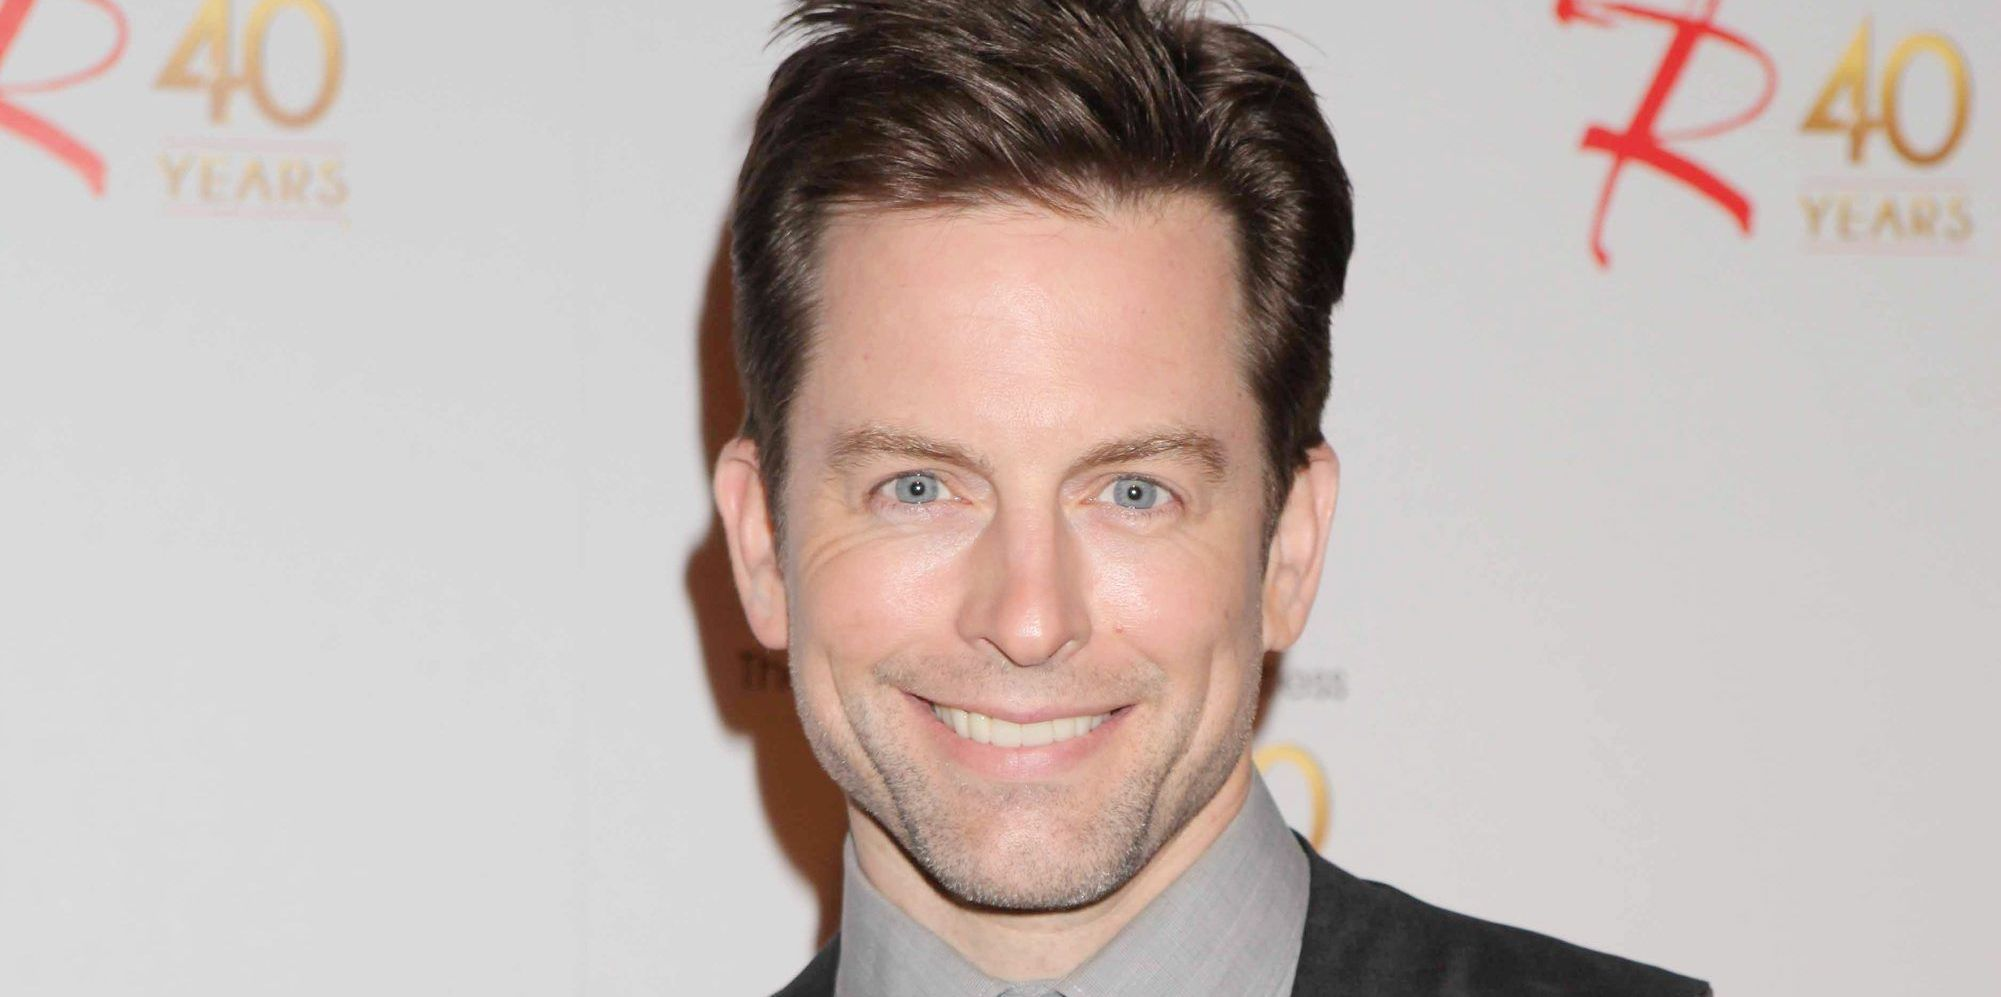 Michael Muhney